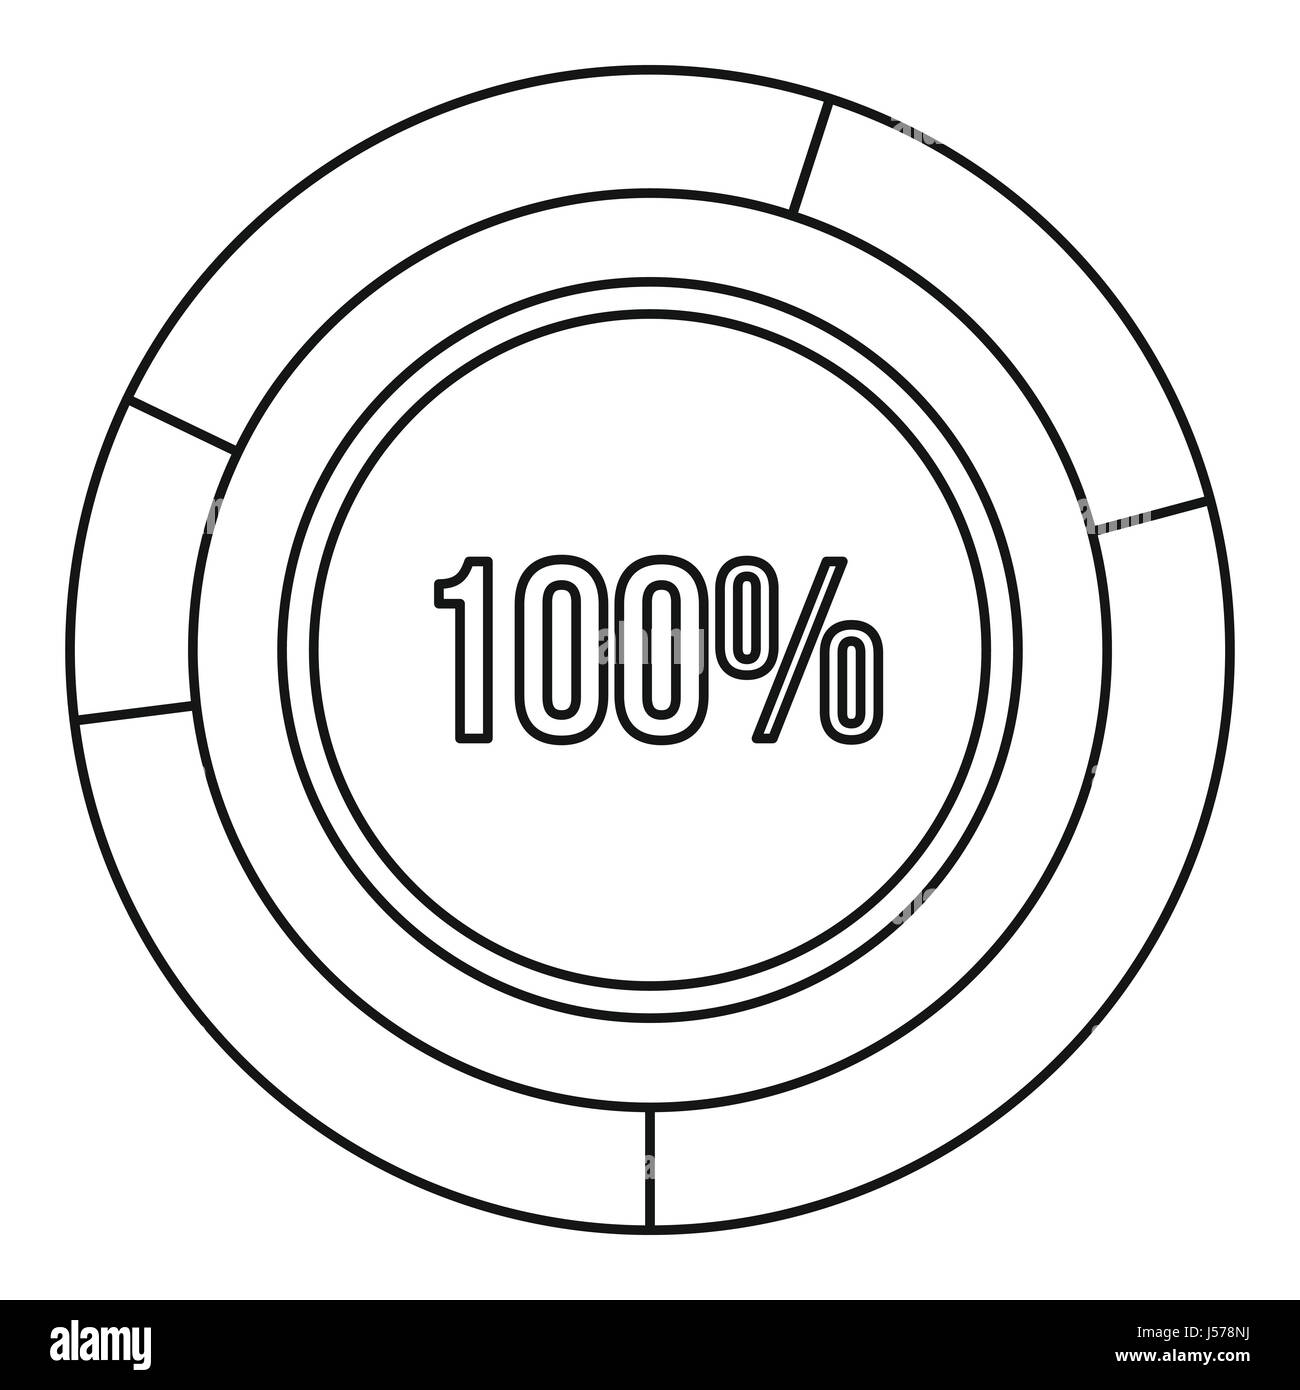 Pie chart circle graph 100 percent icon stock vector art pie chart circle graph 100 percent icon ccuart Images